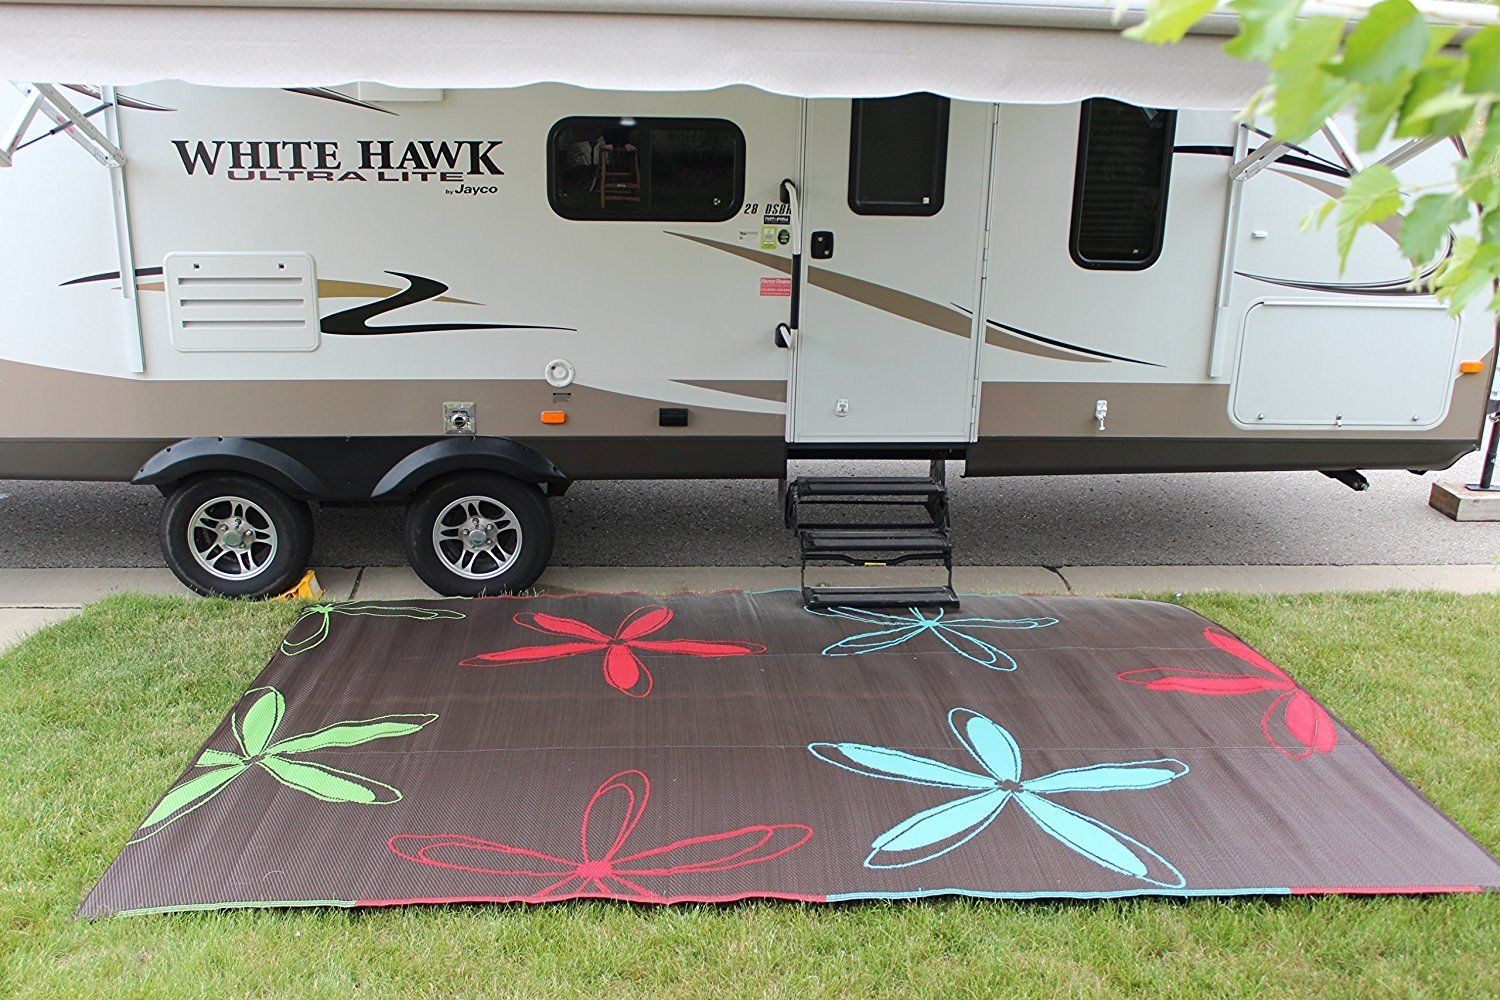 Pin By Terri Mccune On Stuff To Buy In 2020 Camping Rug Camping Must Haves Outdoor Camping Rugs